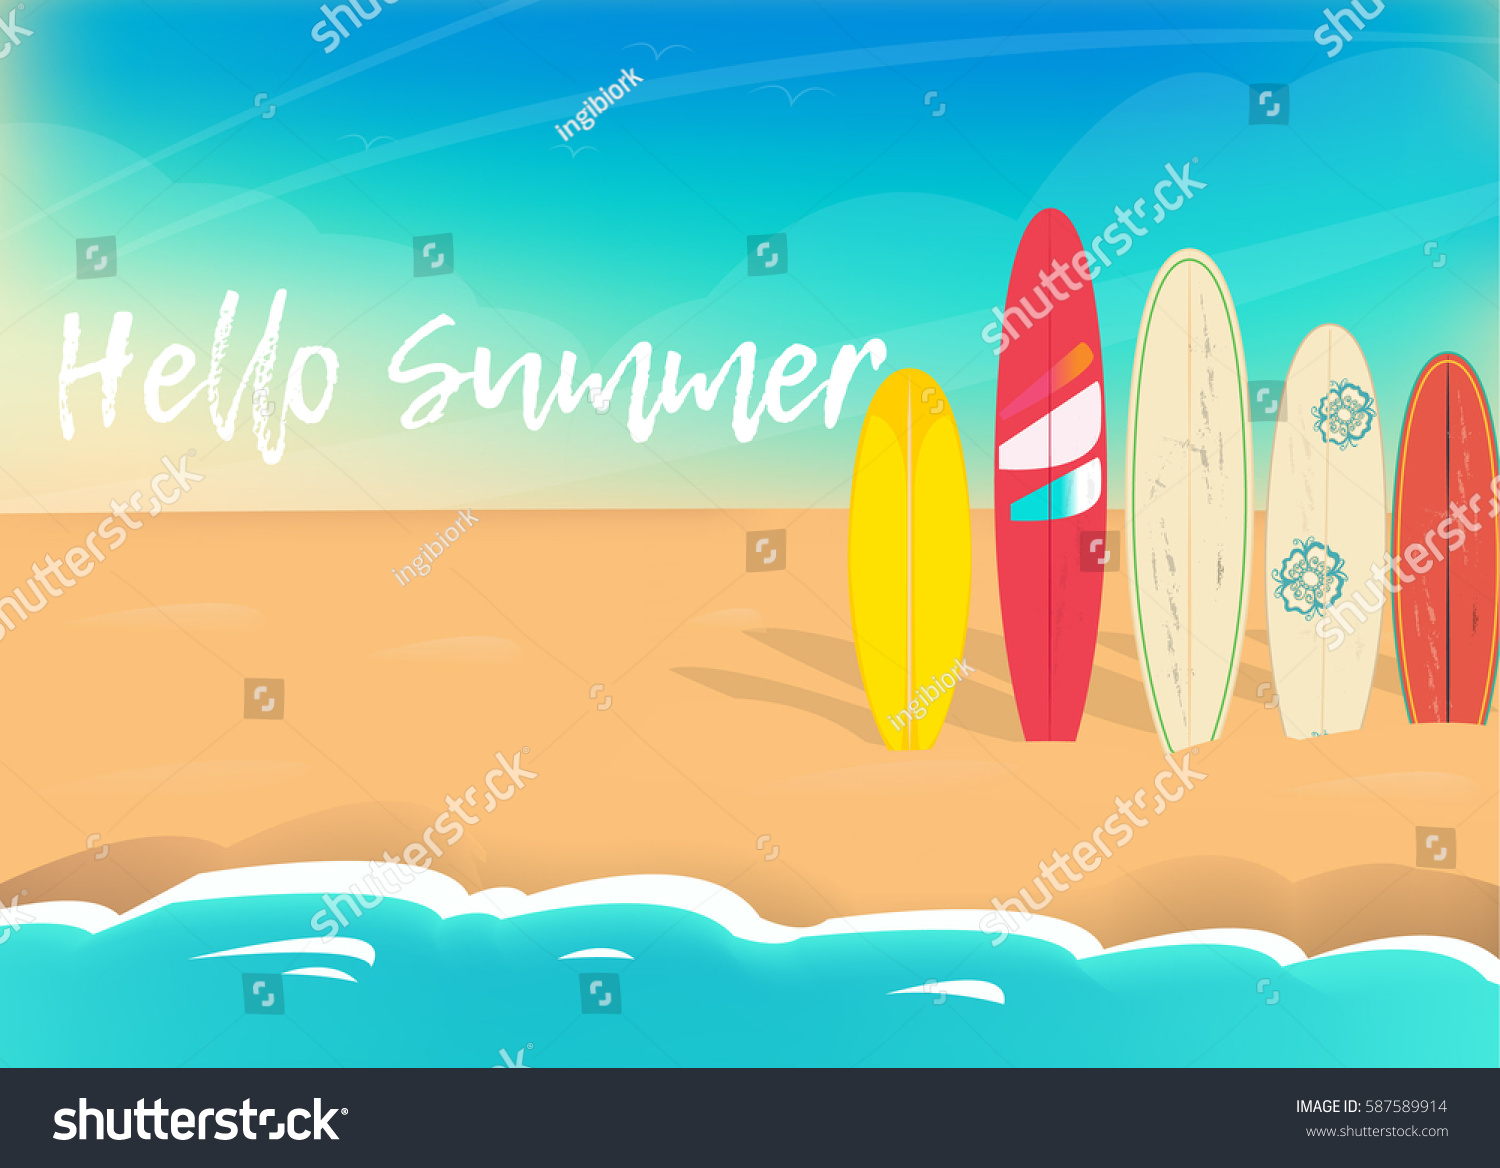 Marvelous Hello Summer Vector Poster. Sea Sand Sky And Summer Day Amazing Design